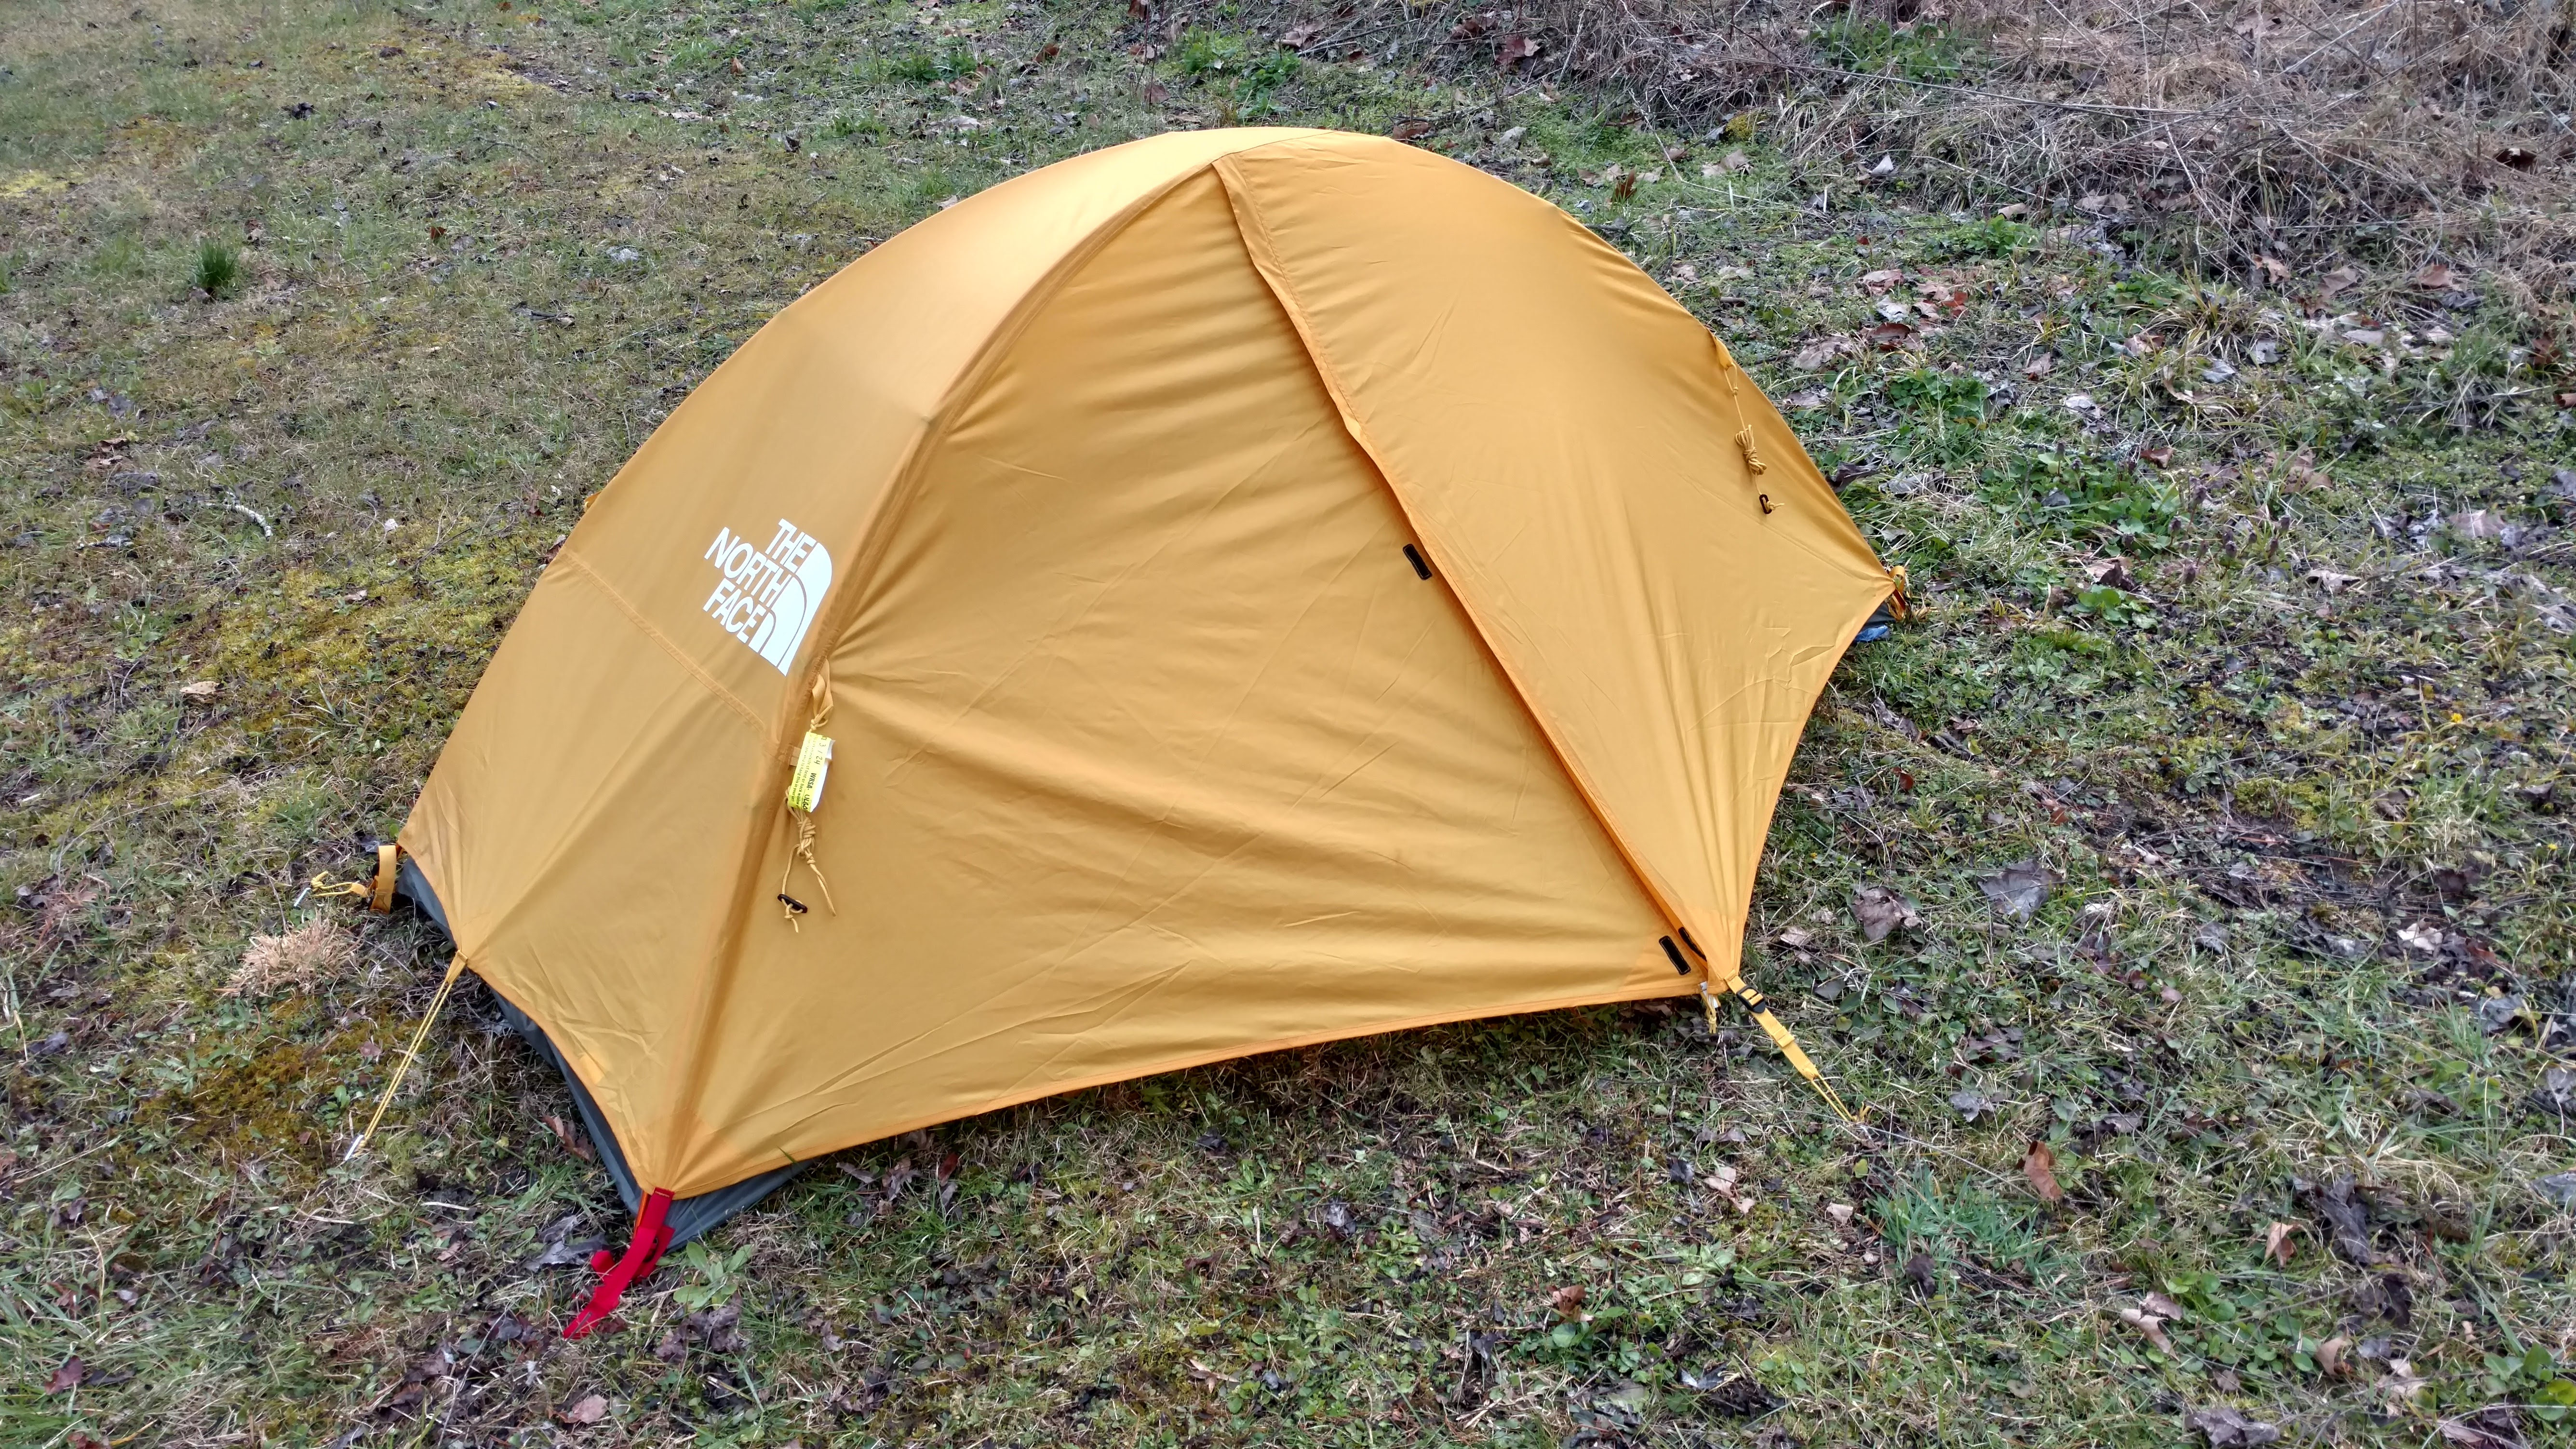 For anyone who appreciates having their own personal space single-person tents are awesome (I am one of these people). Not to mention single-person tents ... & Solitude at its Finest: The North Face Stormbreak 1 Tent u2013 Gear ...